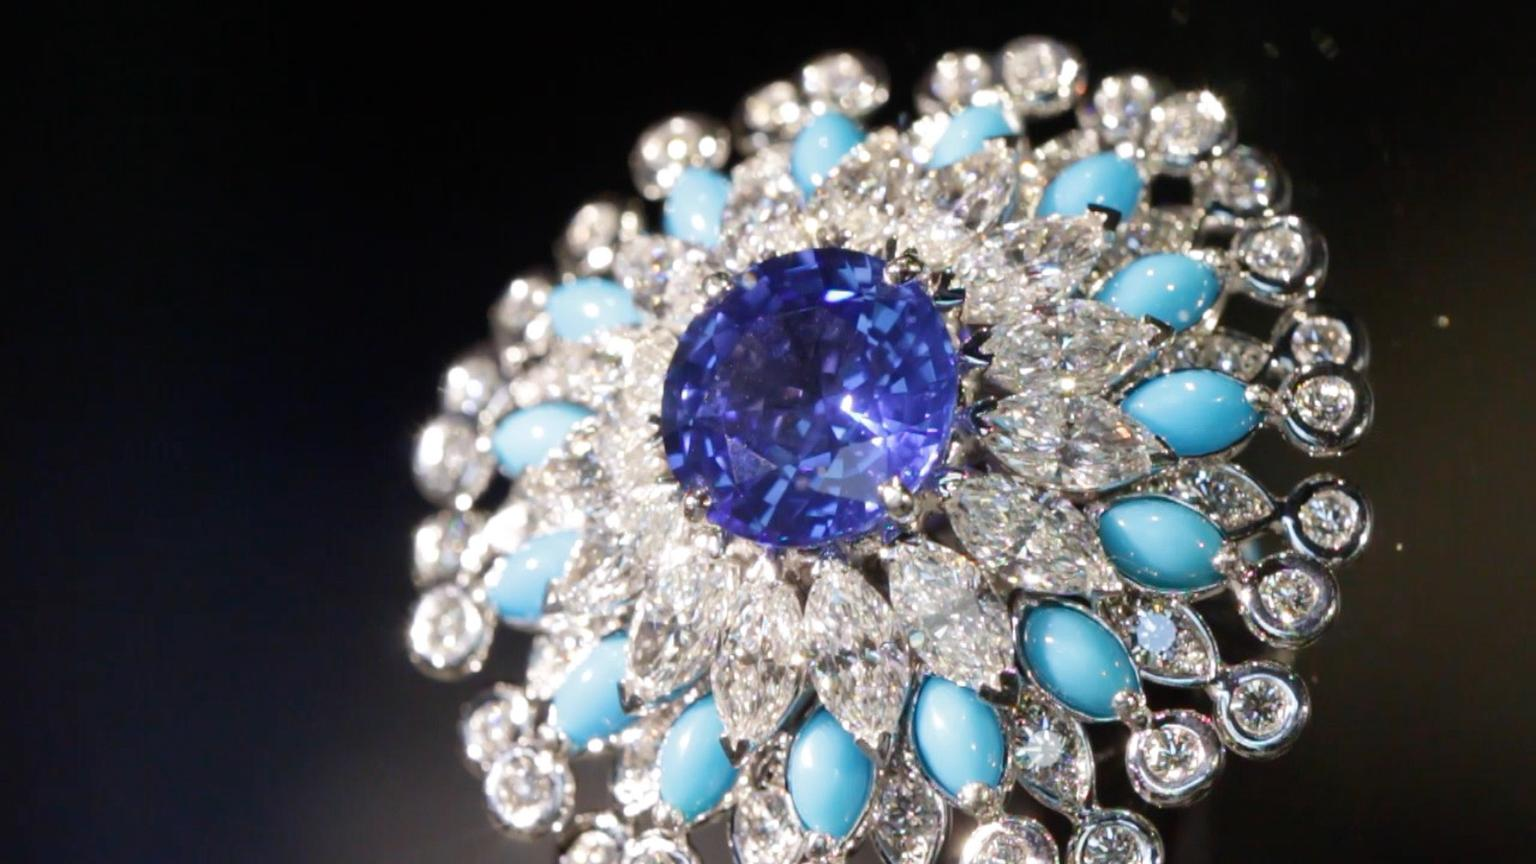 Piaget's sapphire, multi-shaped diamonds and turquoise bead ring- as seen during my recent trip to the 2014 Biennale des Antiquaires- was big and bold yet perfectly elegant.